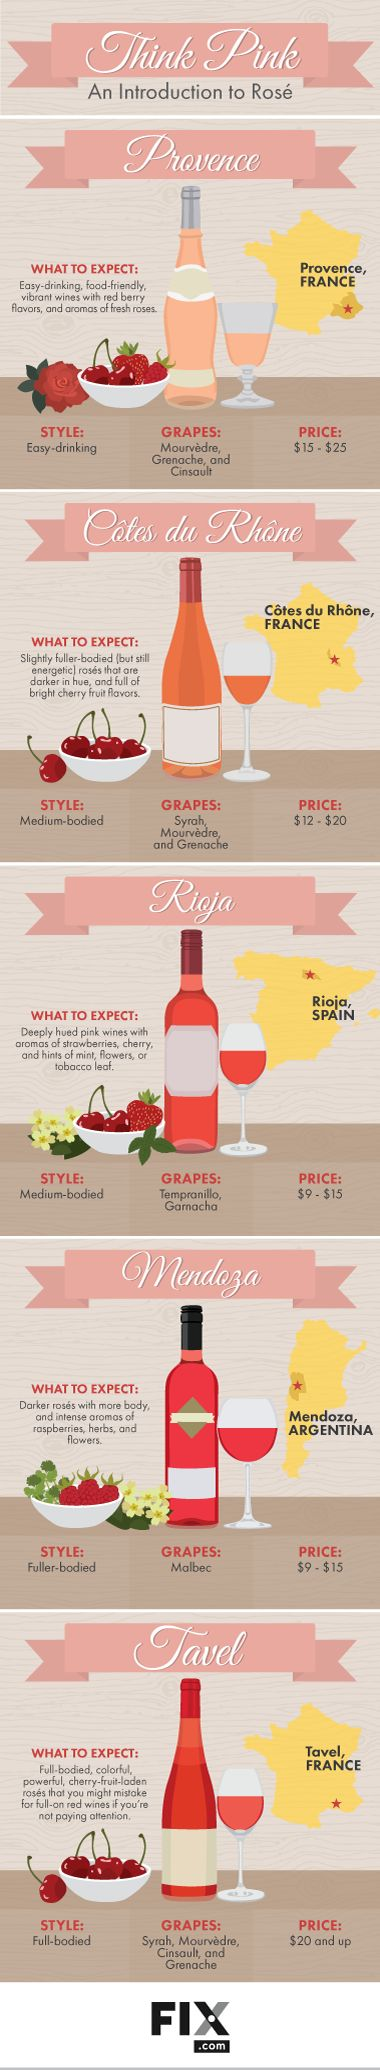 Think Pink An Introduction to Rosé #wine #rosé #wineeducation